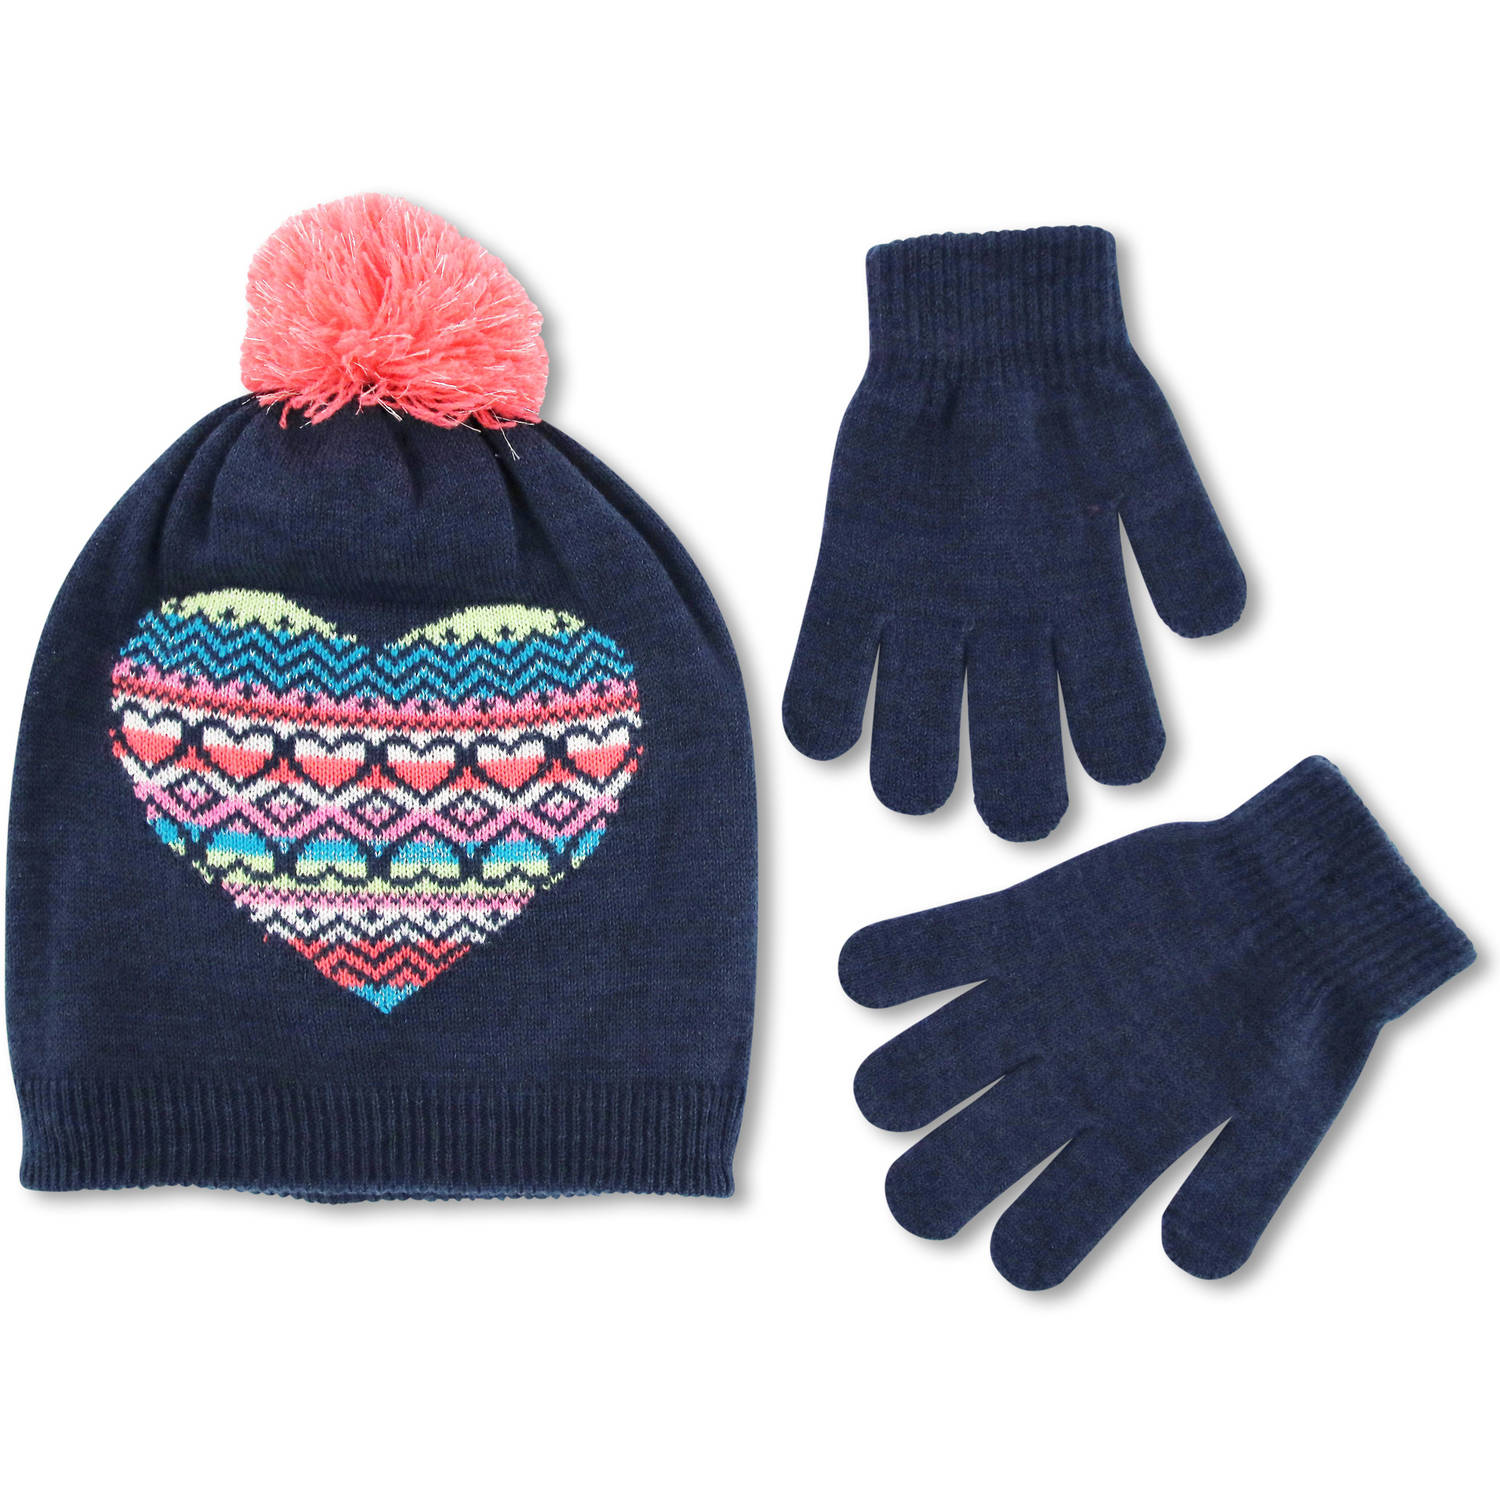 Image of ABG navy blue fair isle heart pom knit beanie hat with magic glove set.